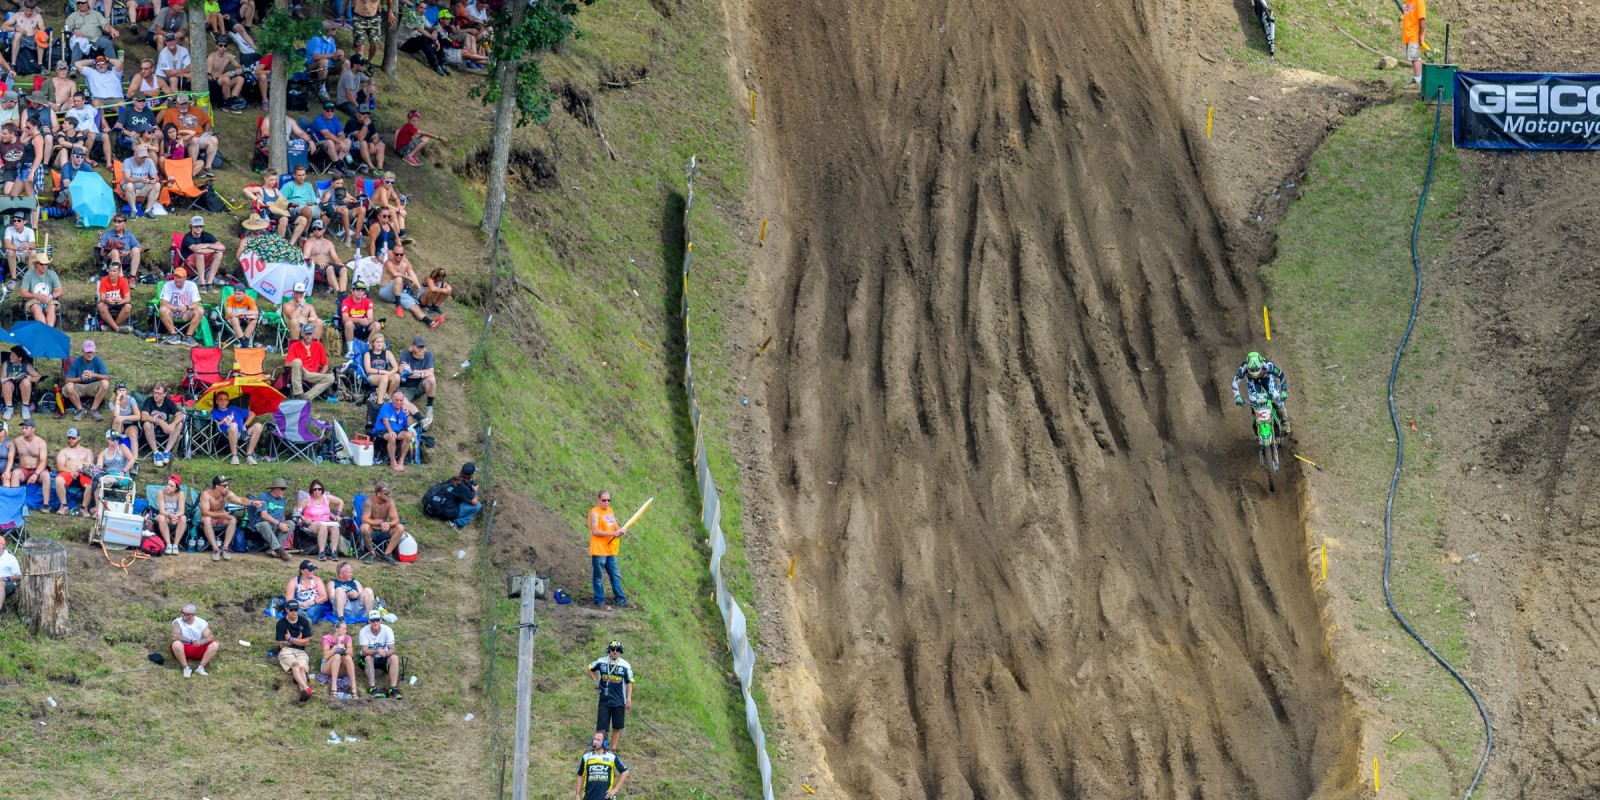 Action shots of our athletes at MX Millville